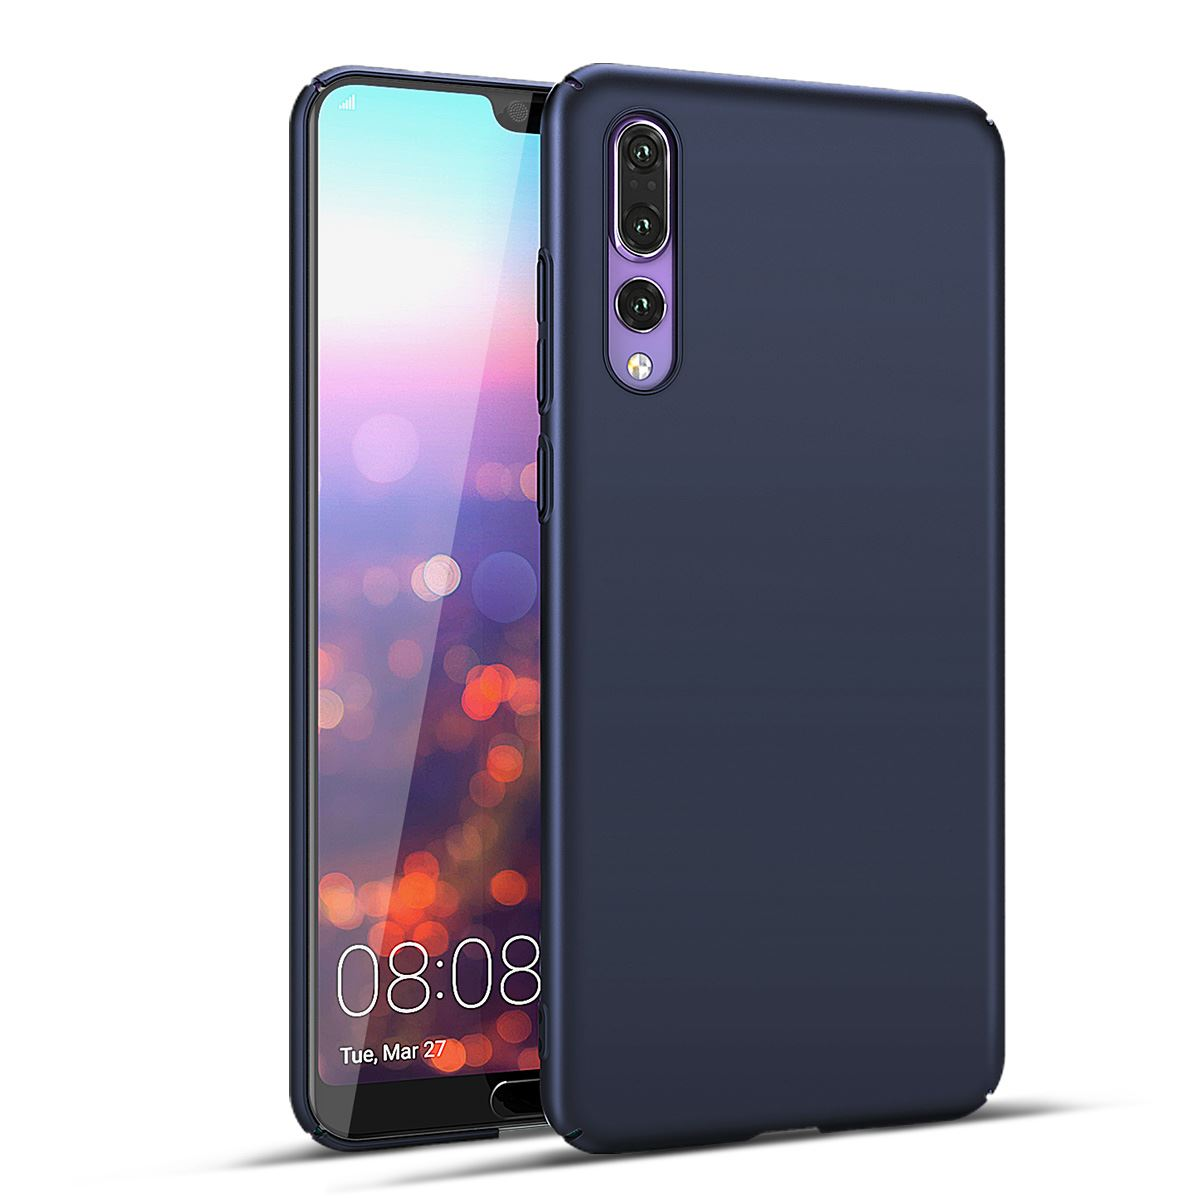 Luxury-Protective-Slim-Thin-Hard-Back-Case-Cover-For-Huawei-P20-Pro-P10-P-Smart thumbnail 46